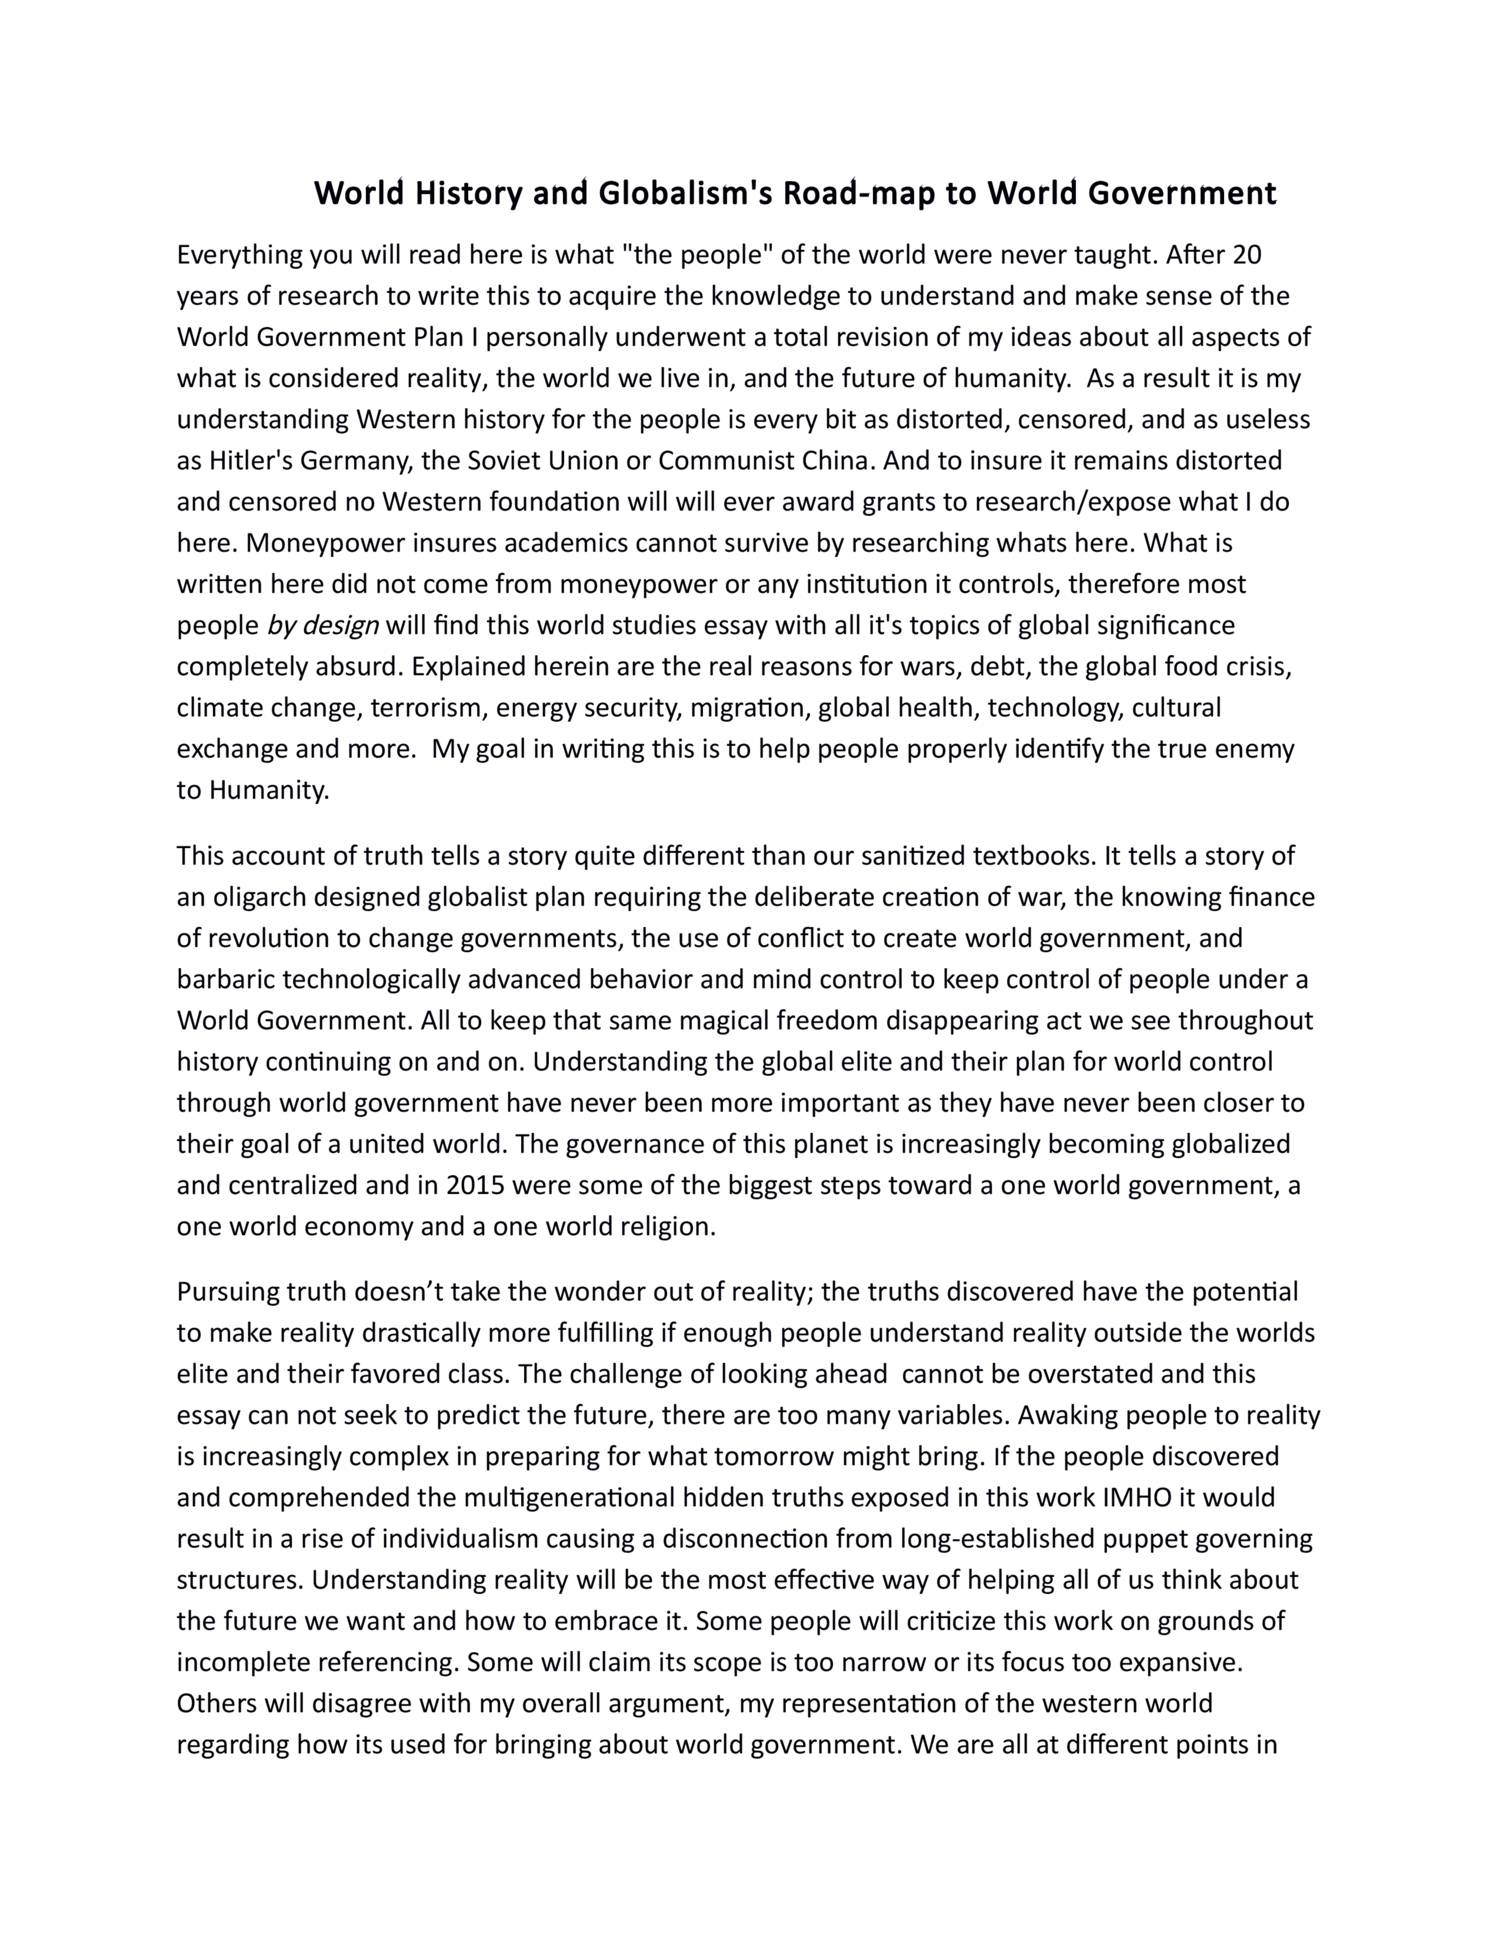 world of future essay Worldview essay - worldview essay  - worldview final paper worldview is how you view the world around you  that are oriented towards the future.